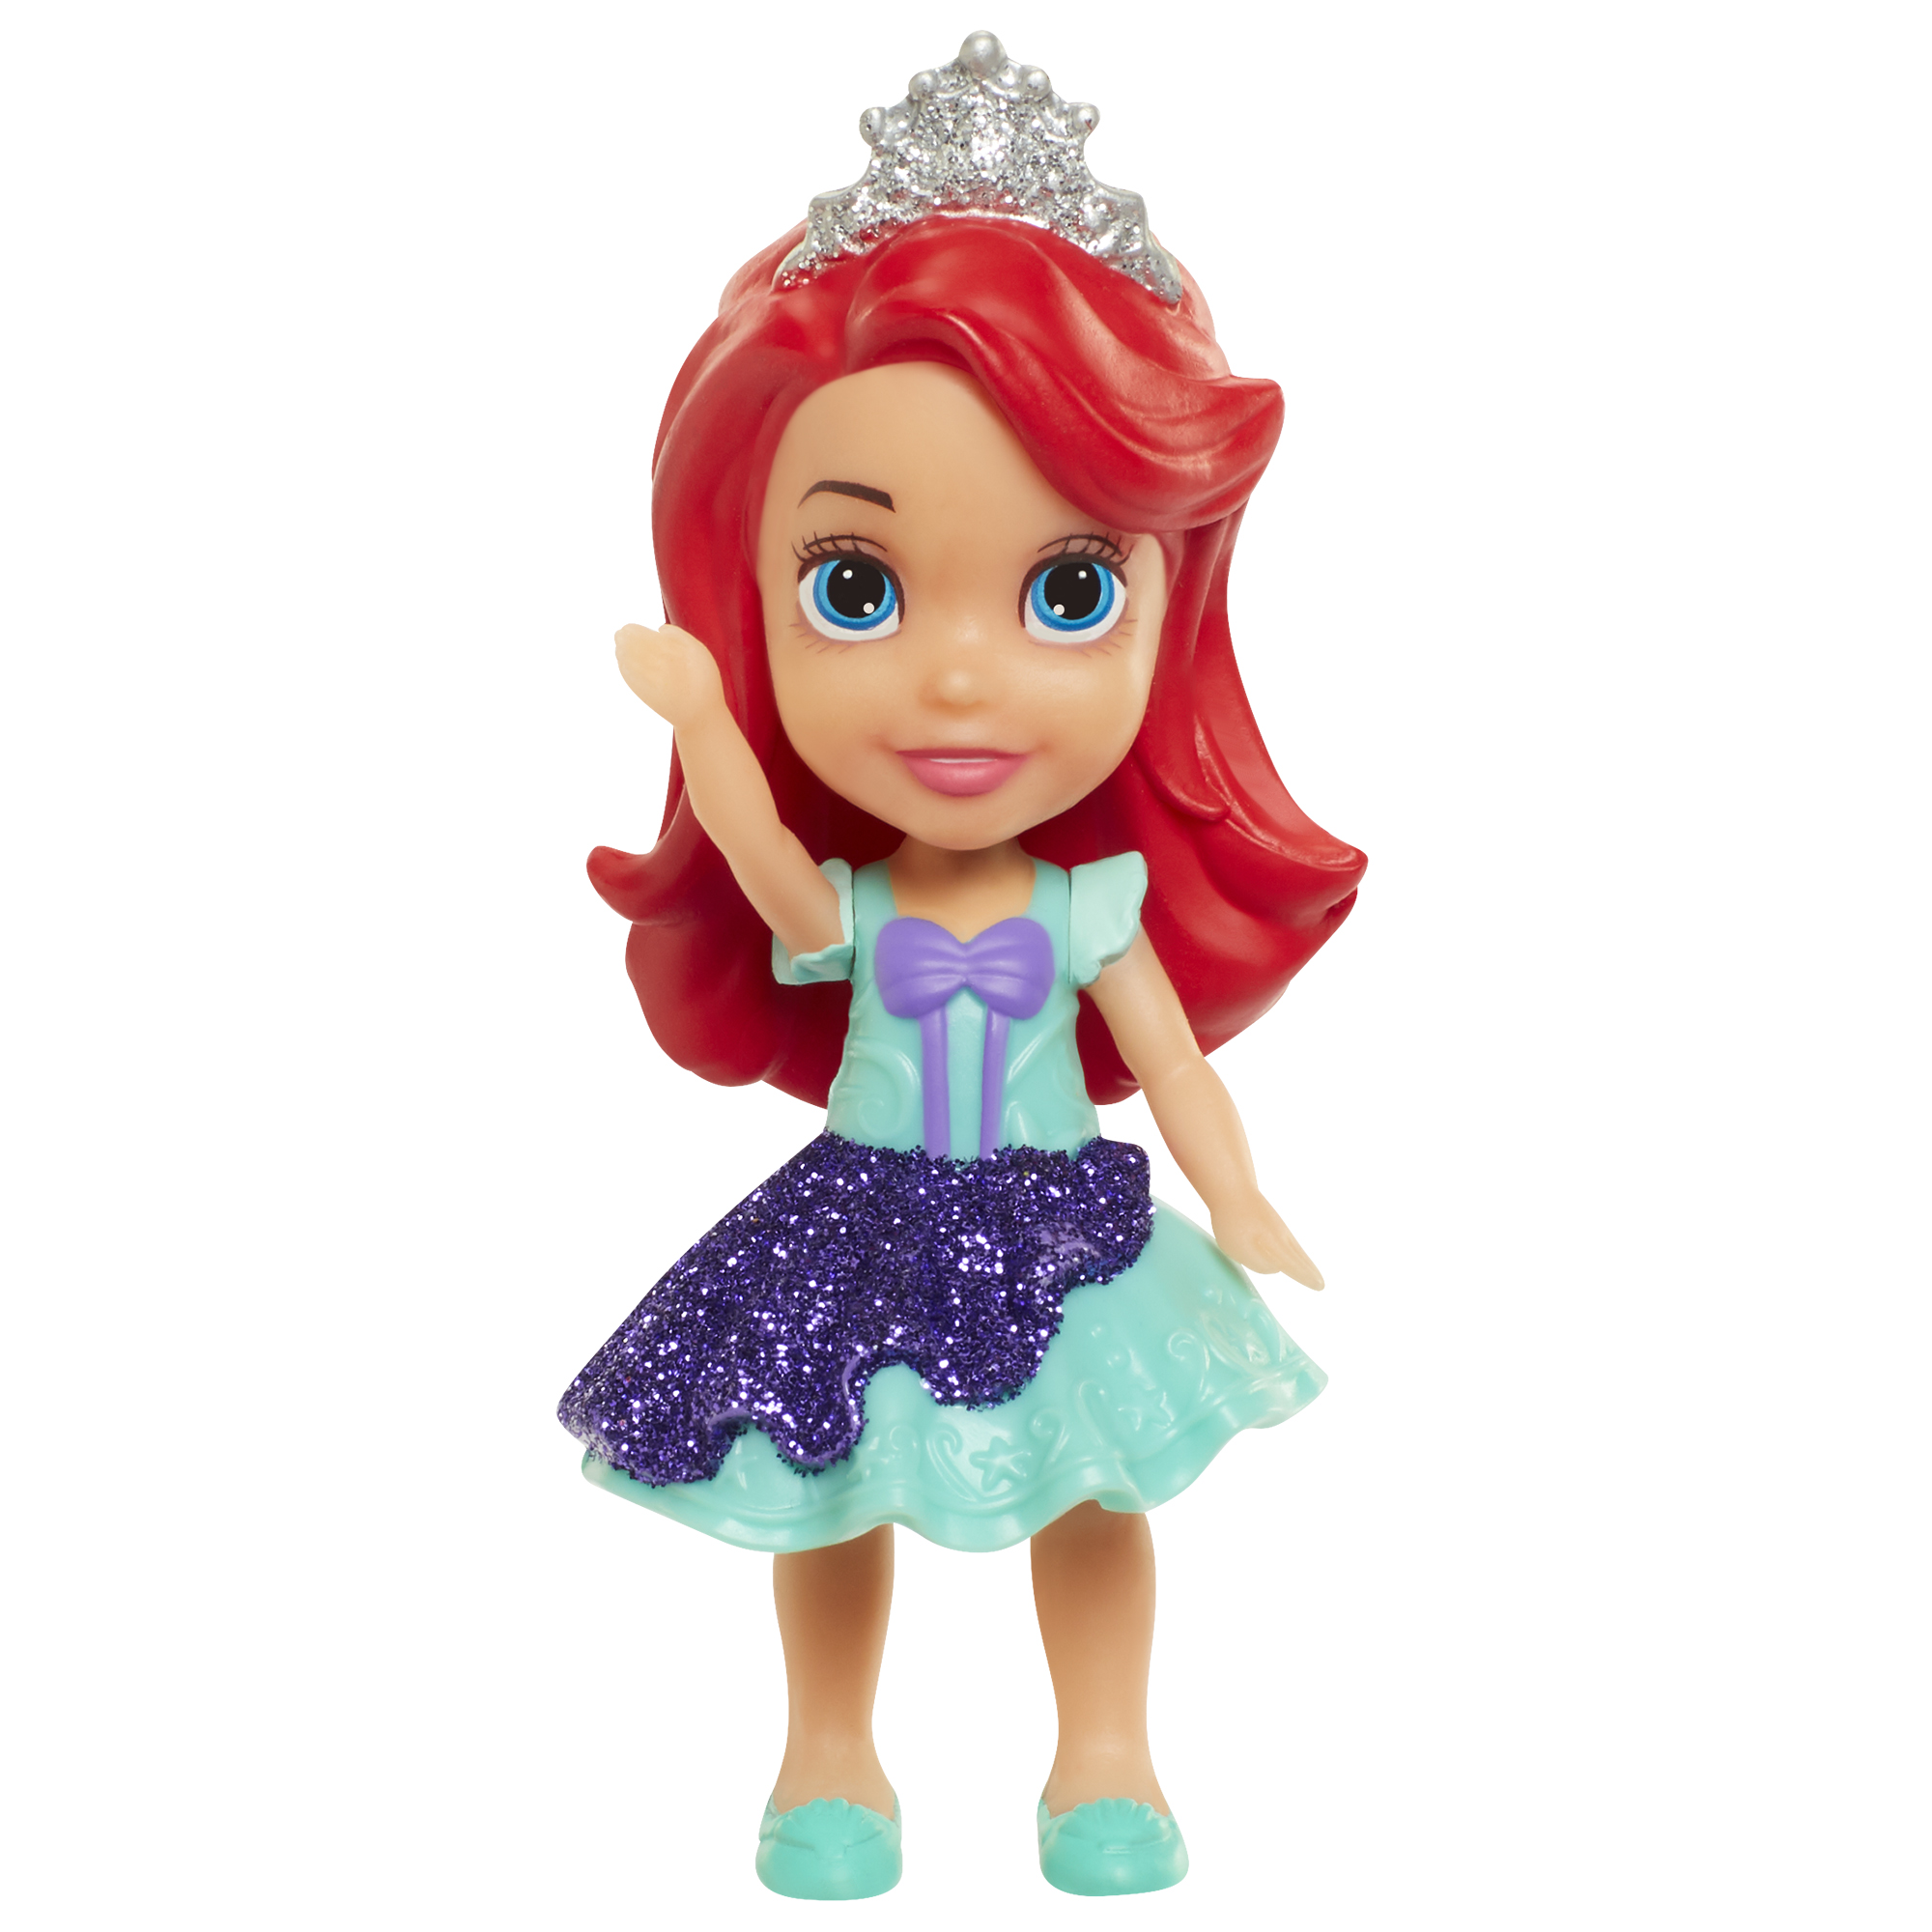 Ariel 3 inch Mini Toddlers Doll Disney Princess